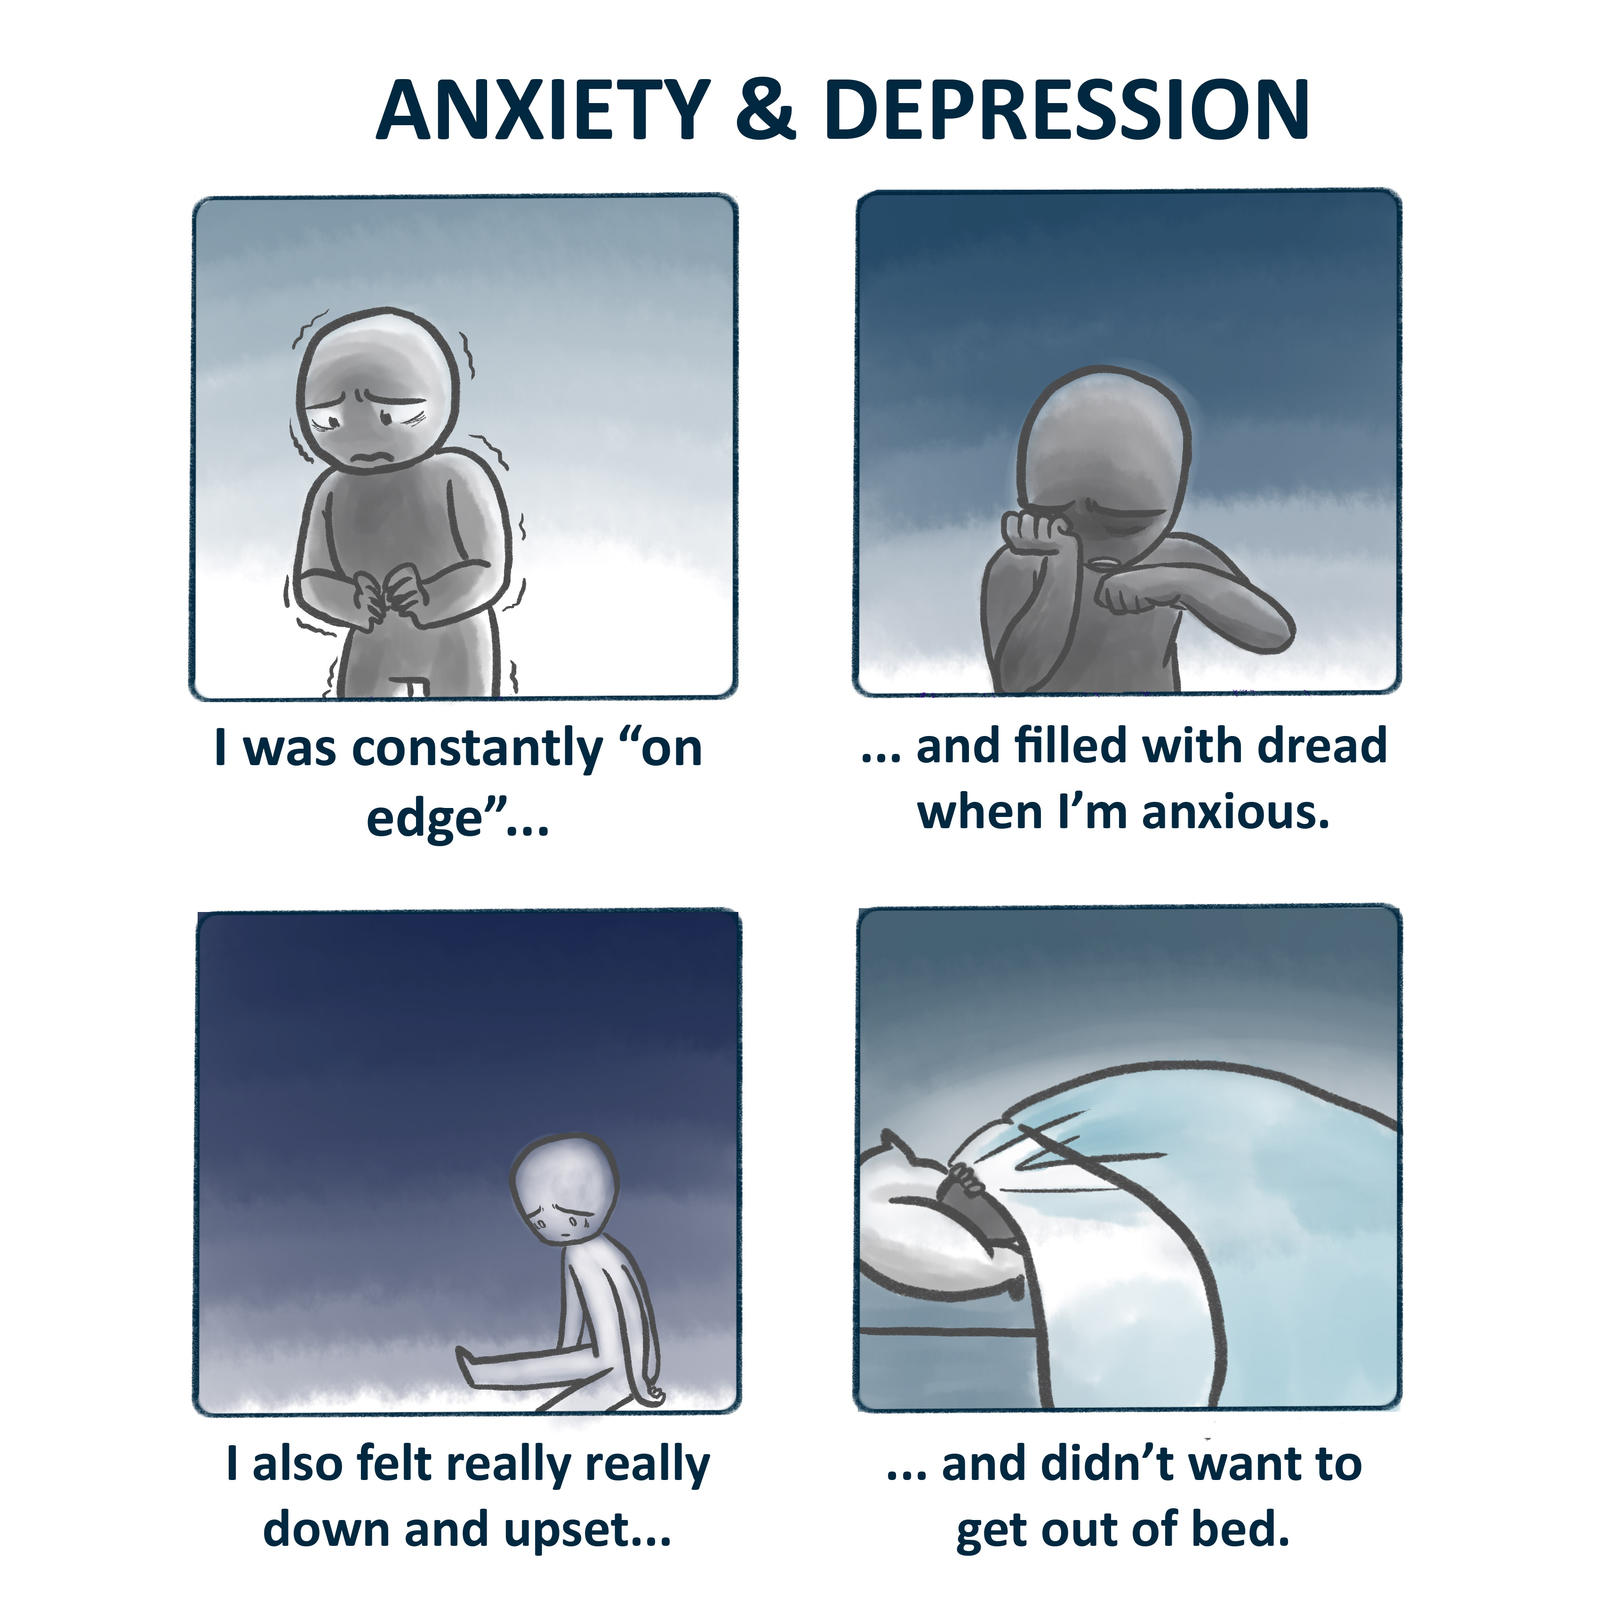 Anxiety And Depression On Edge Viva By Myoo89 On Deviantart